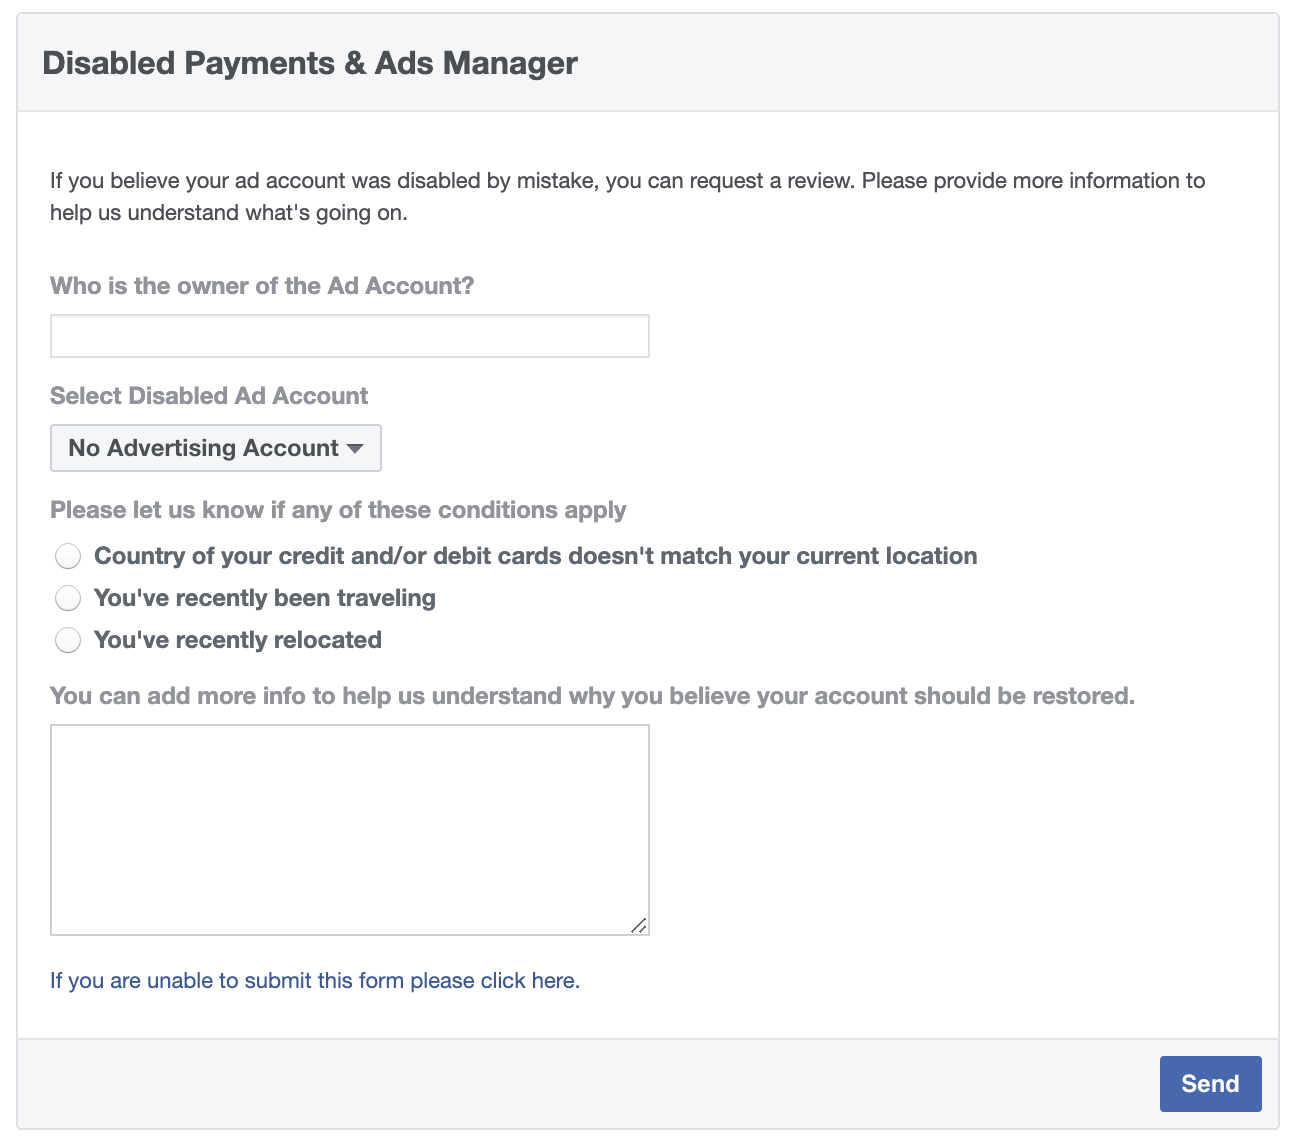 Facebook ad account disabled — payments form